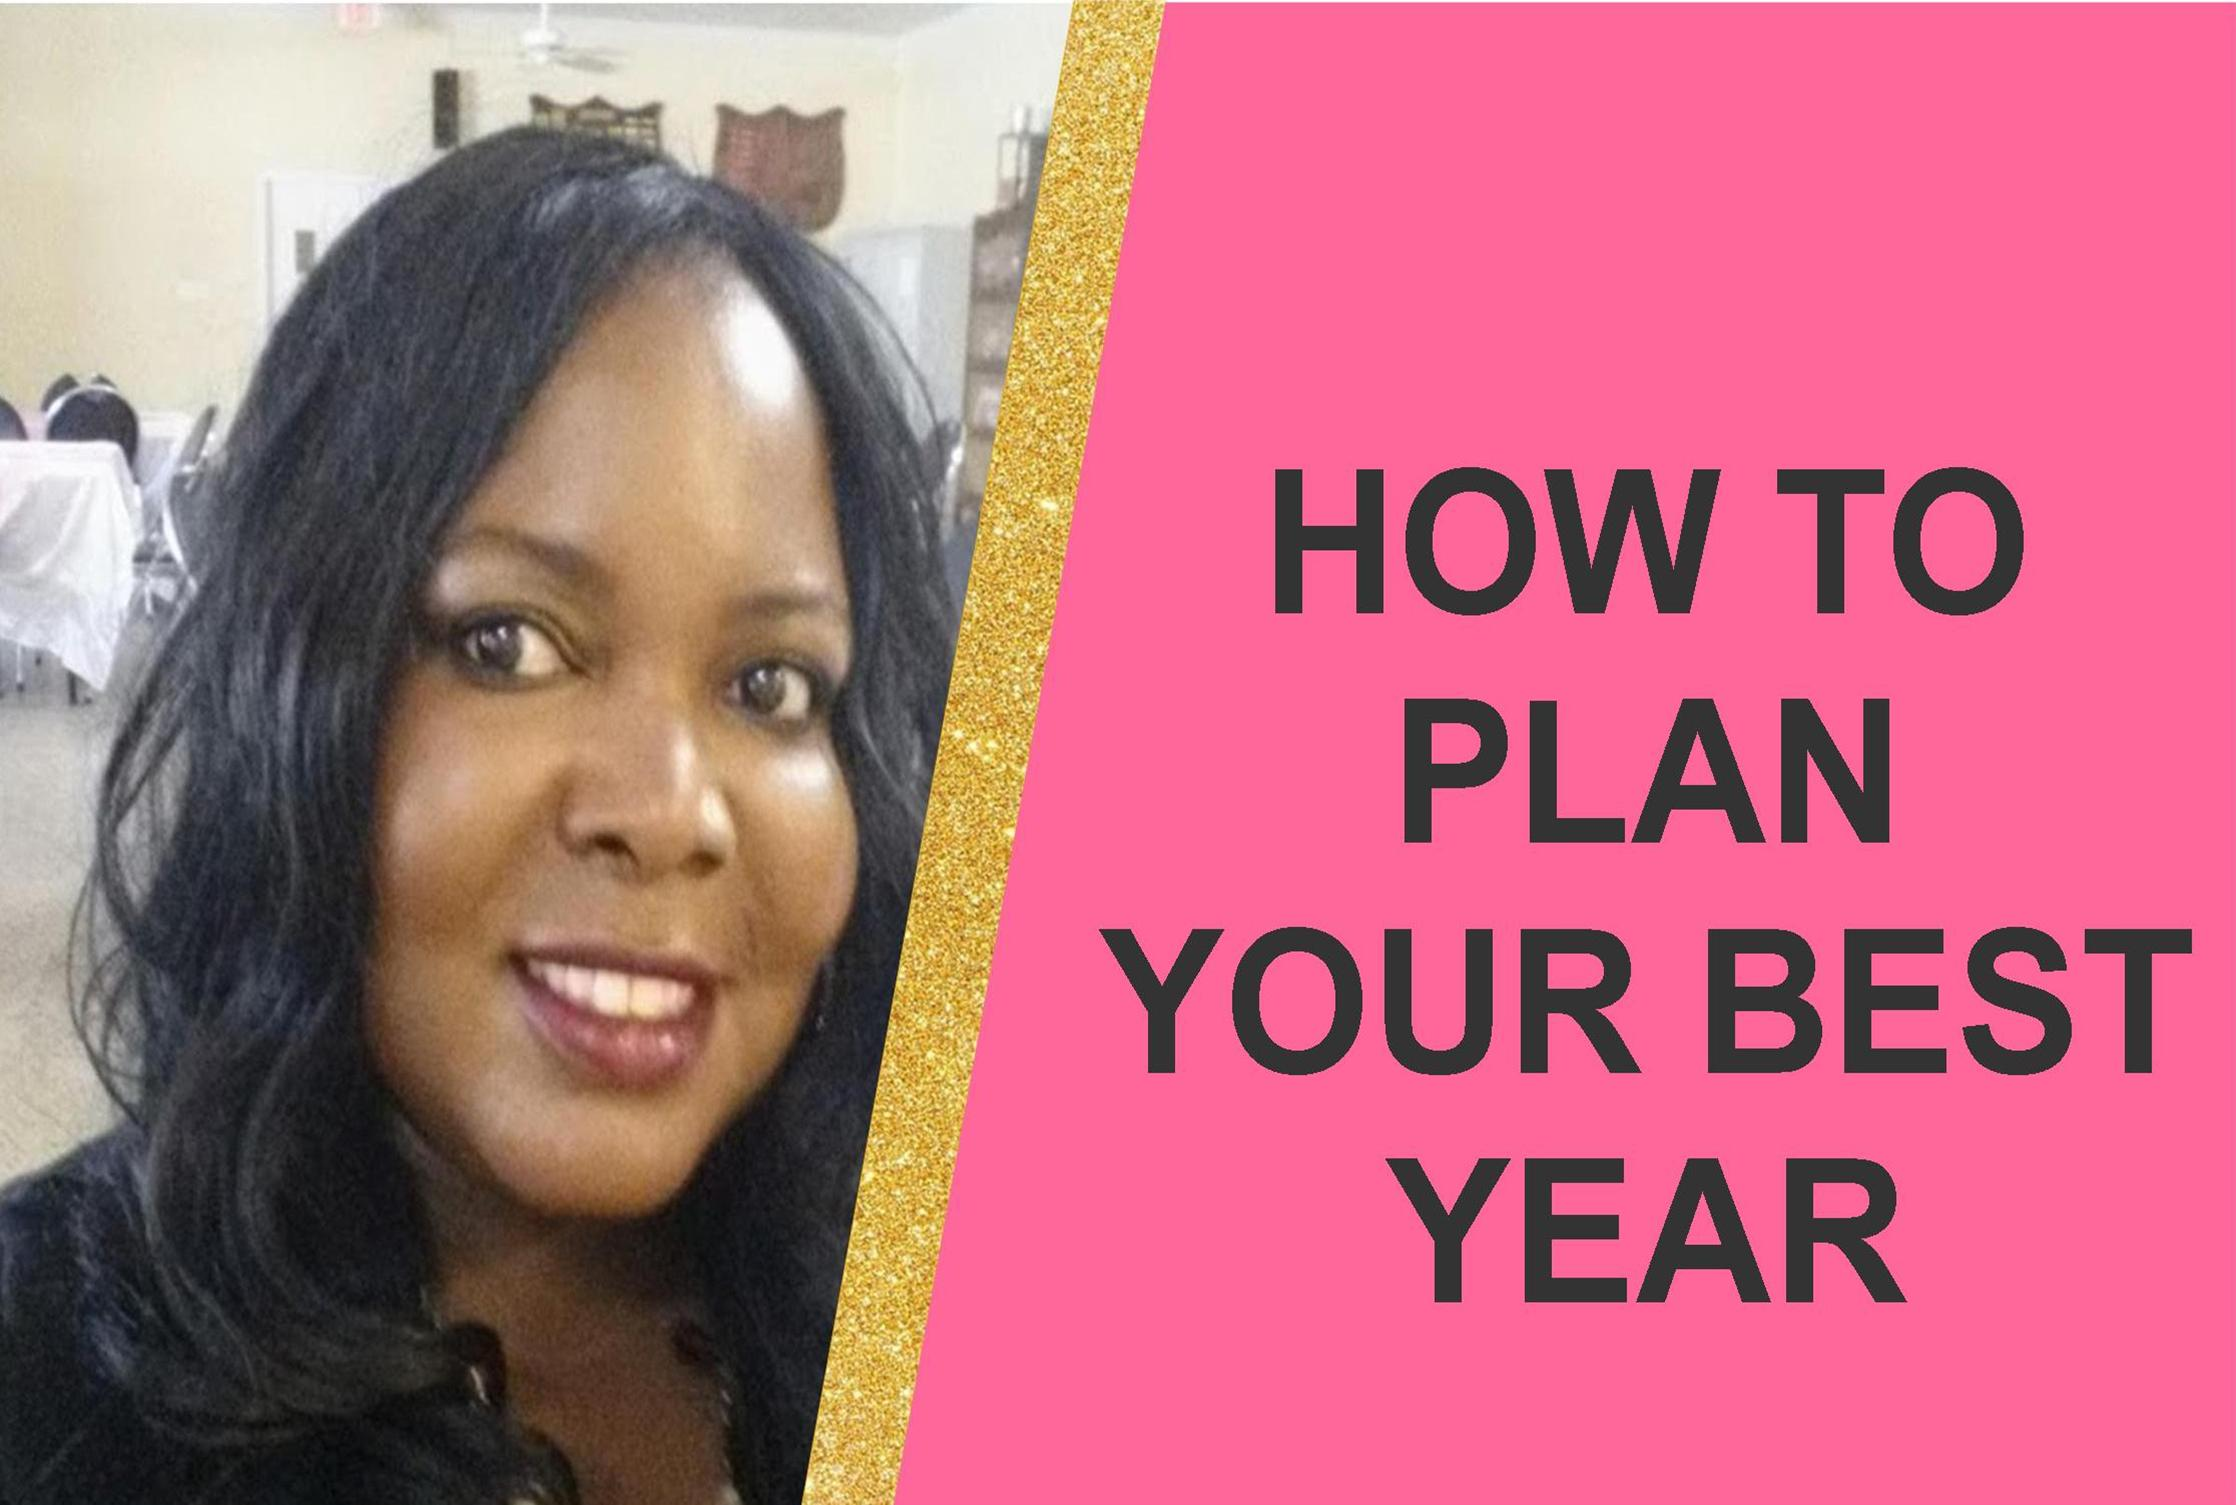 How To Plan Your Best Year